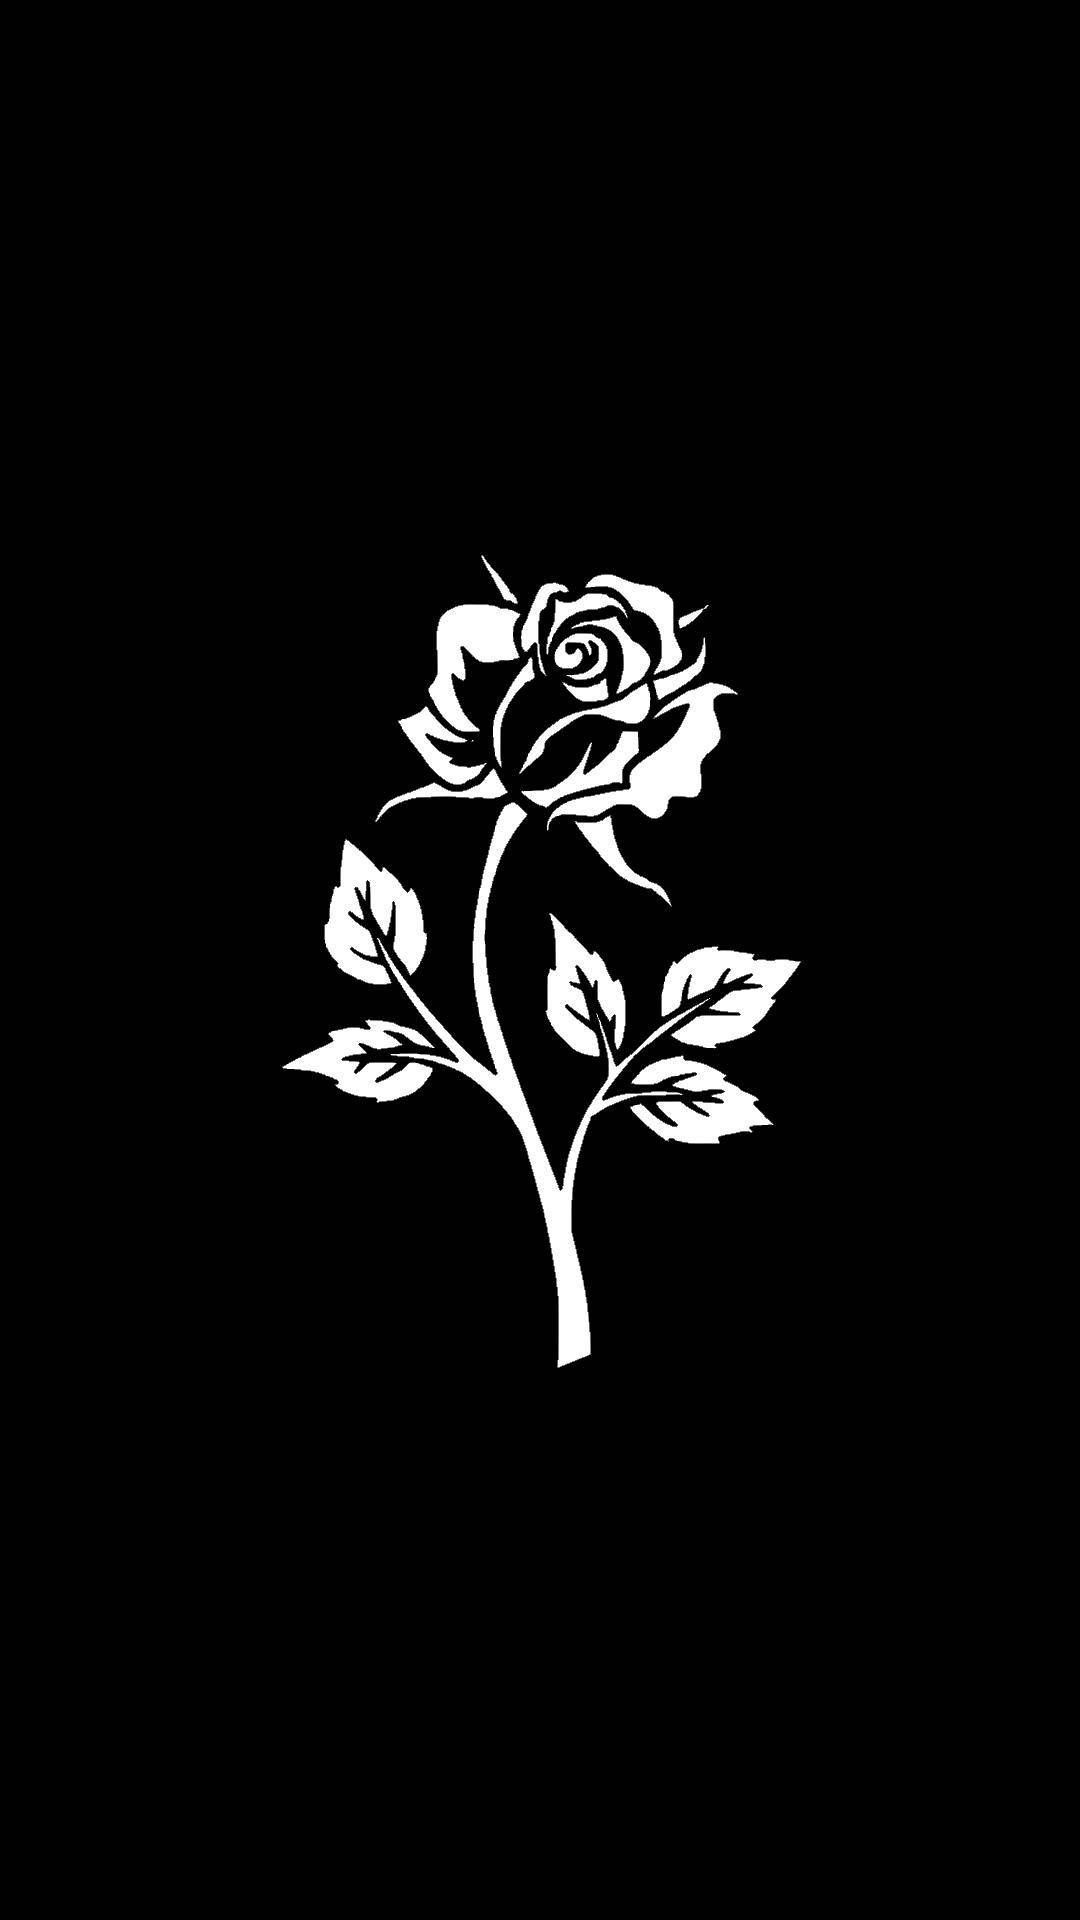 Black Wallpaper On Phone With White Rose Rose Wallpaper Black And White Flowers Pretty Wallpaper Iphone Iphone black and white roses wallpaper